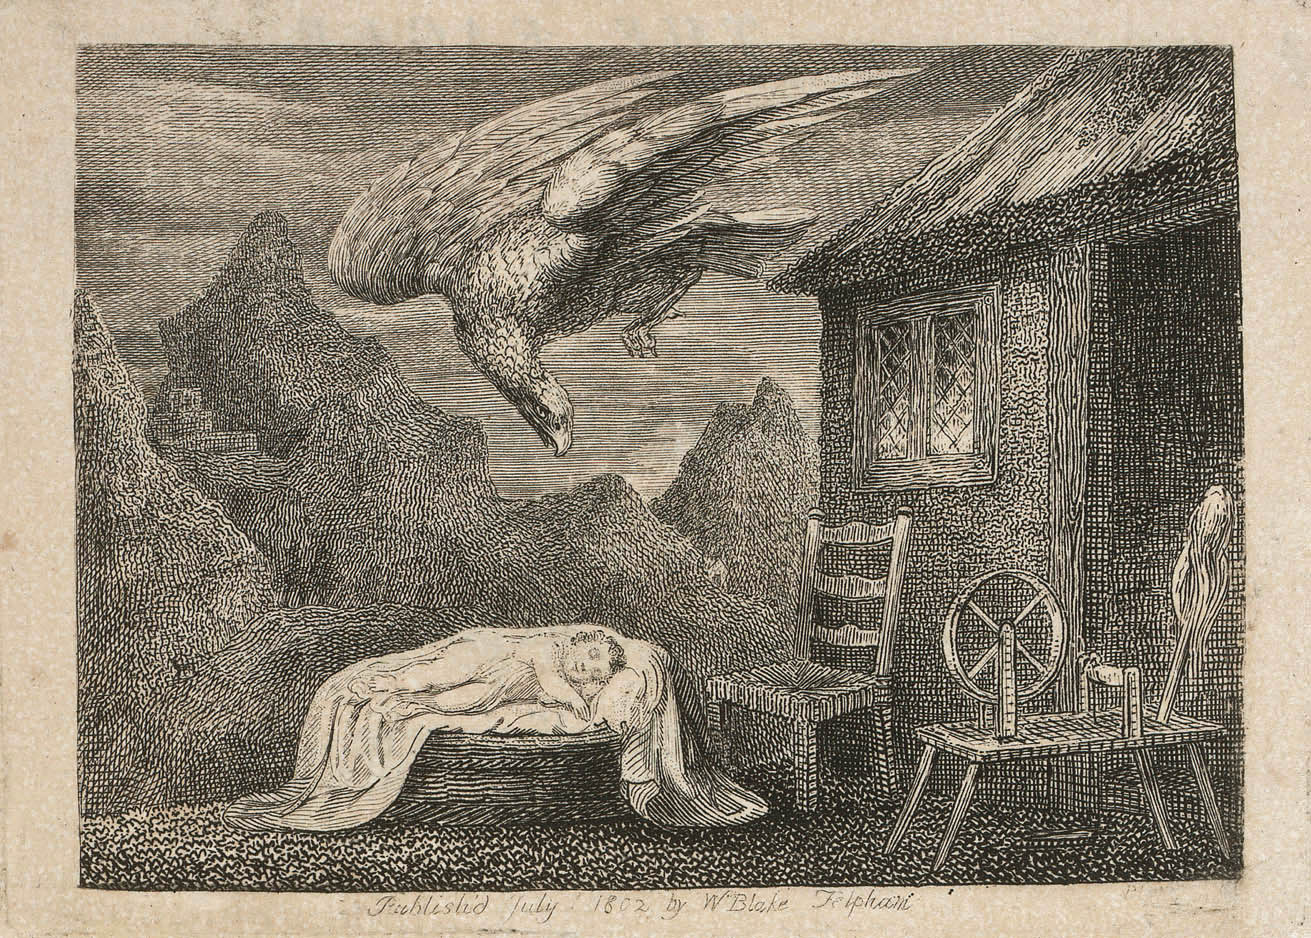 William Blake - Headpiece to The Eagle, Ballad the Second (William Hayley's Ballads. Founded on Anecdotes Relating to Animals) (1802)